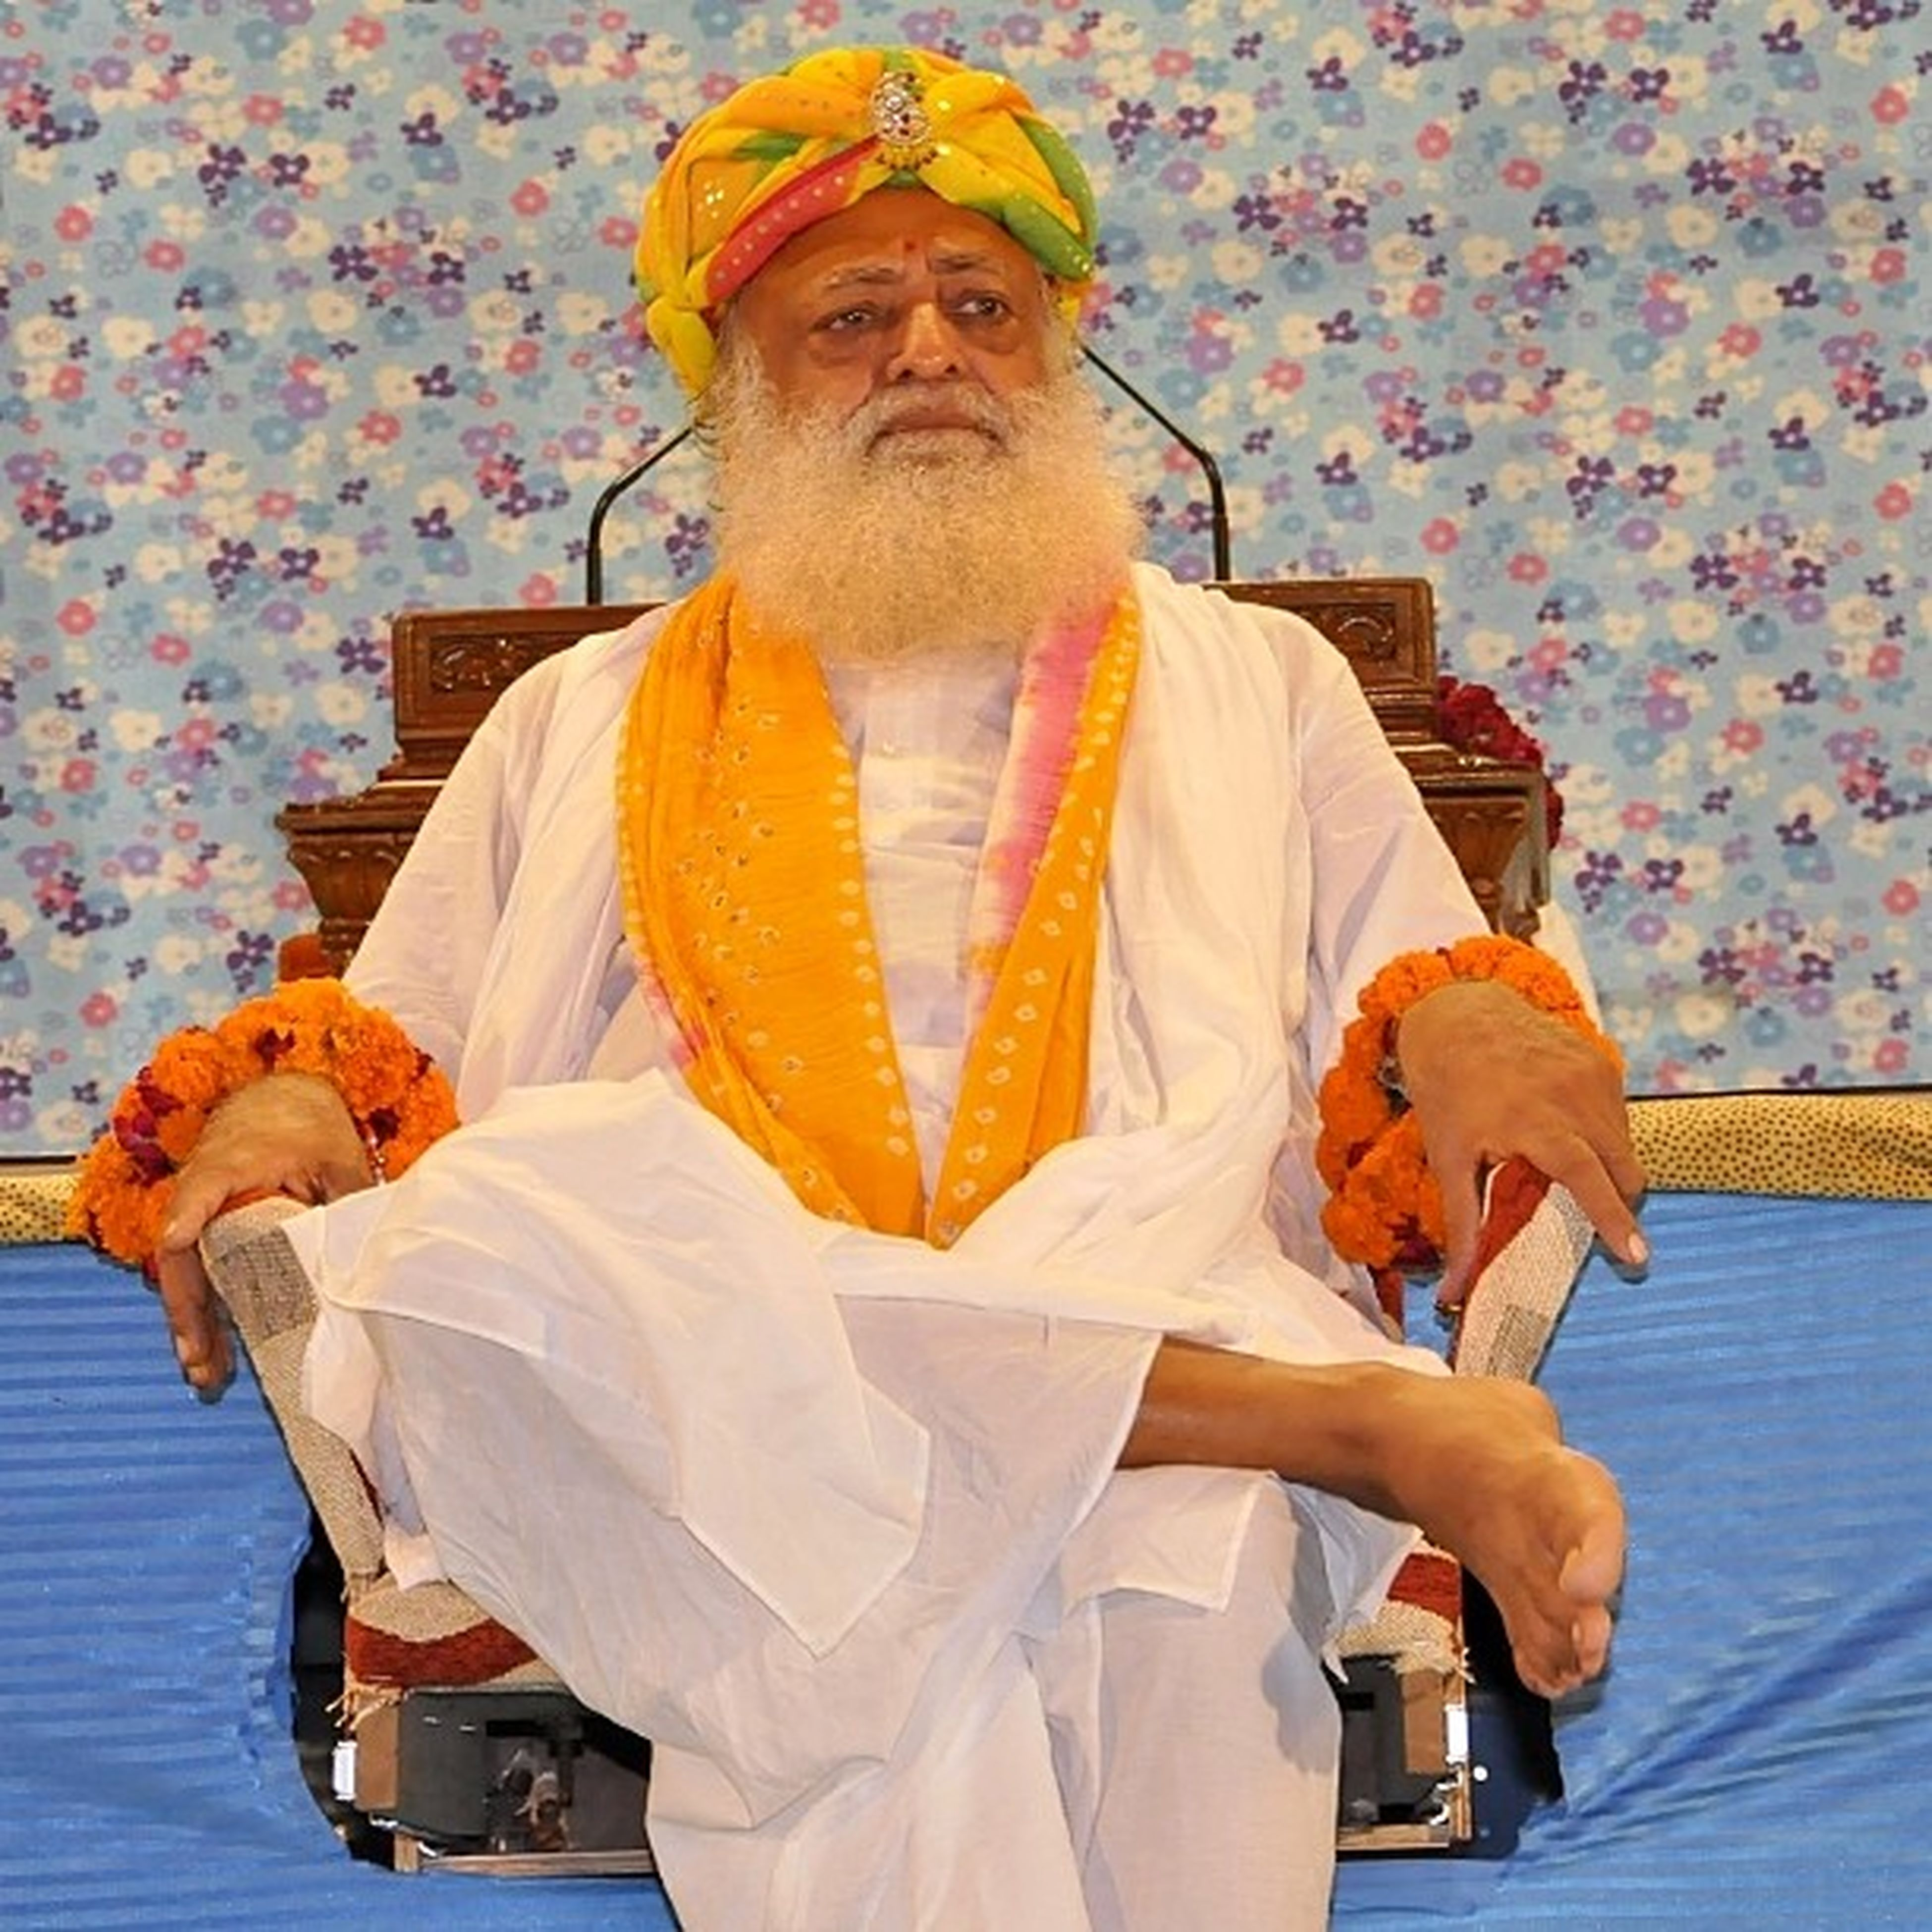 Bapuji Great Hindu Saint Sant Religion Religious  Greatperson God Best  Nice Awesome Godly